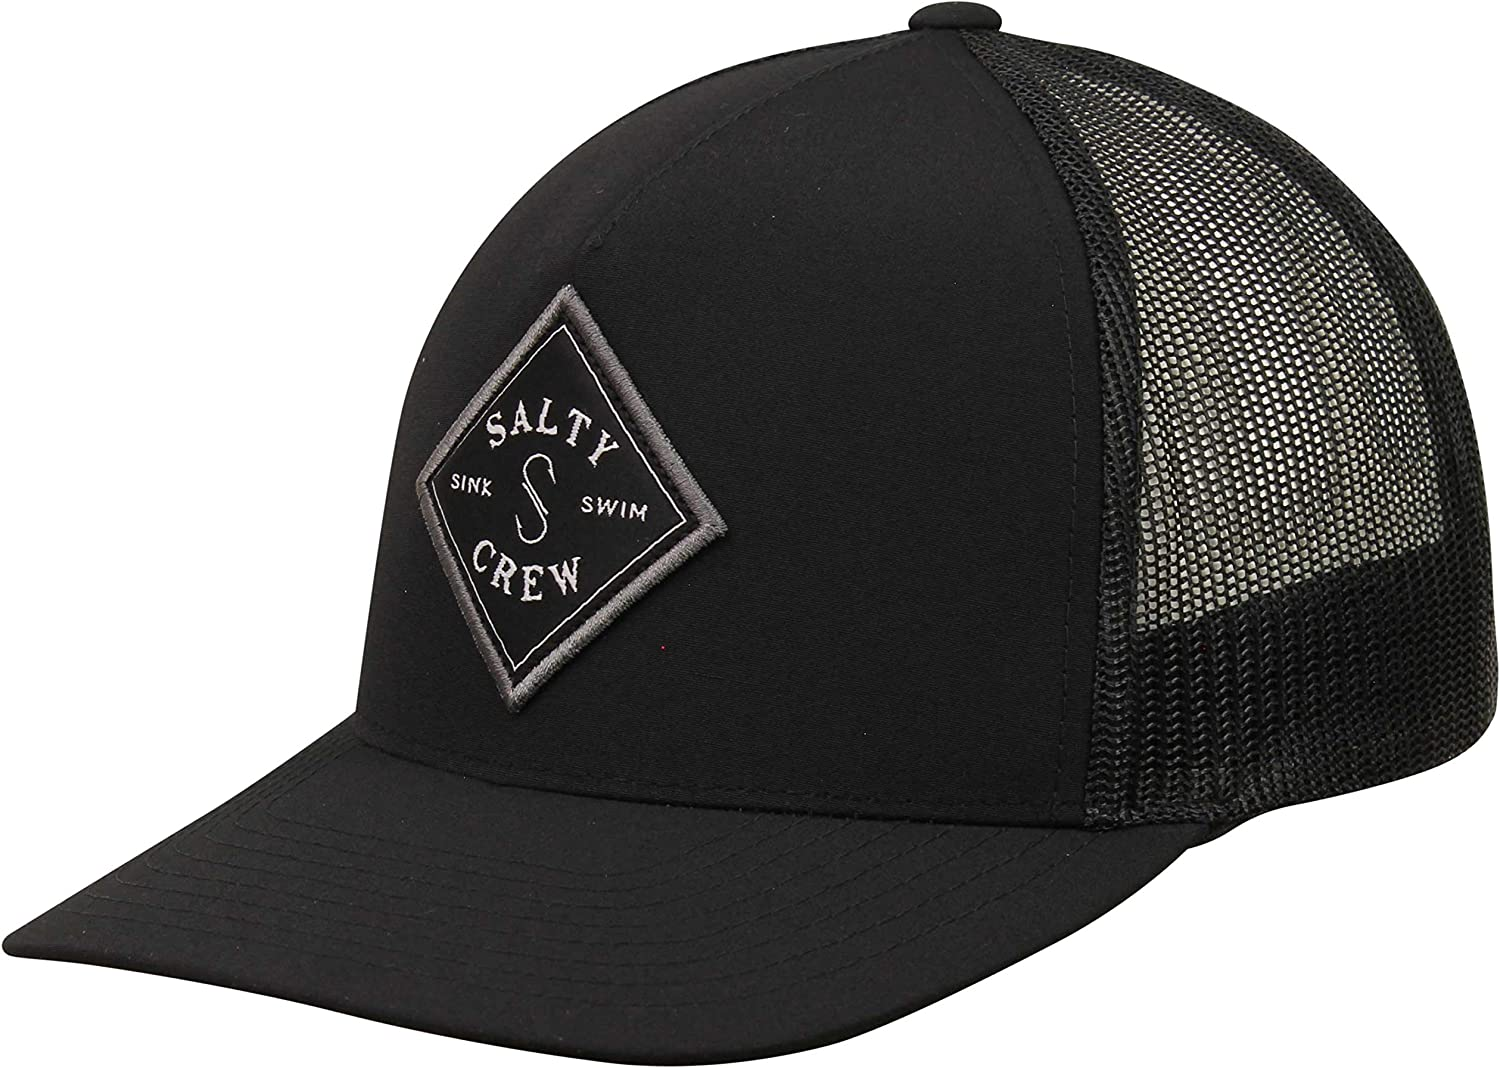 Black Salty Crew Sealine Retro Trucker Hat